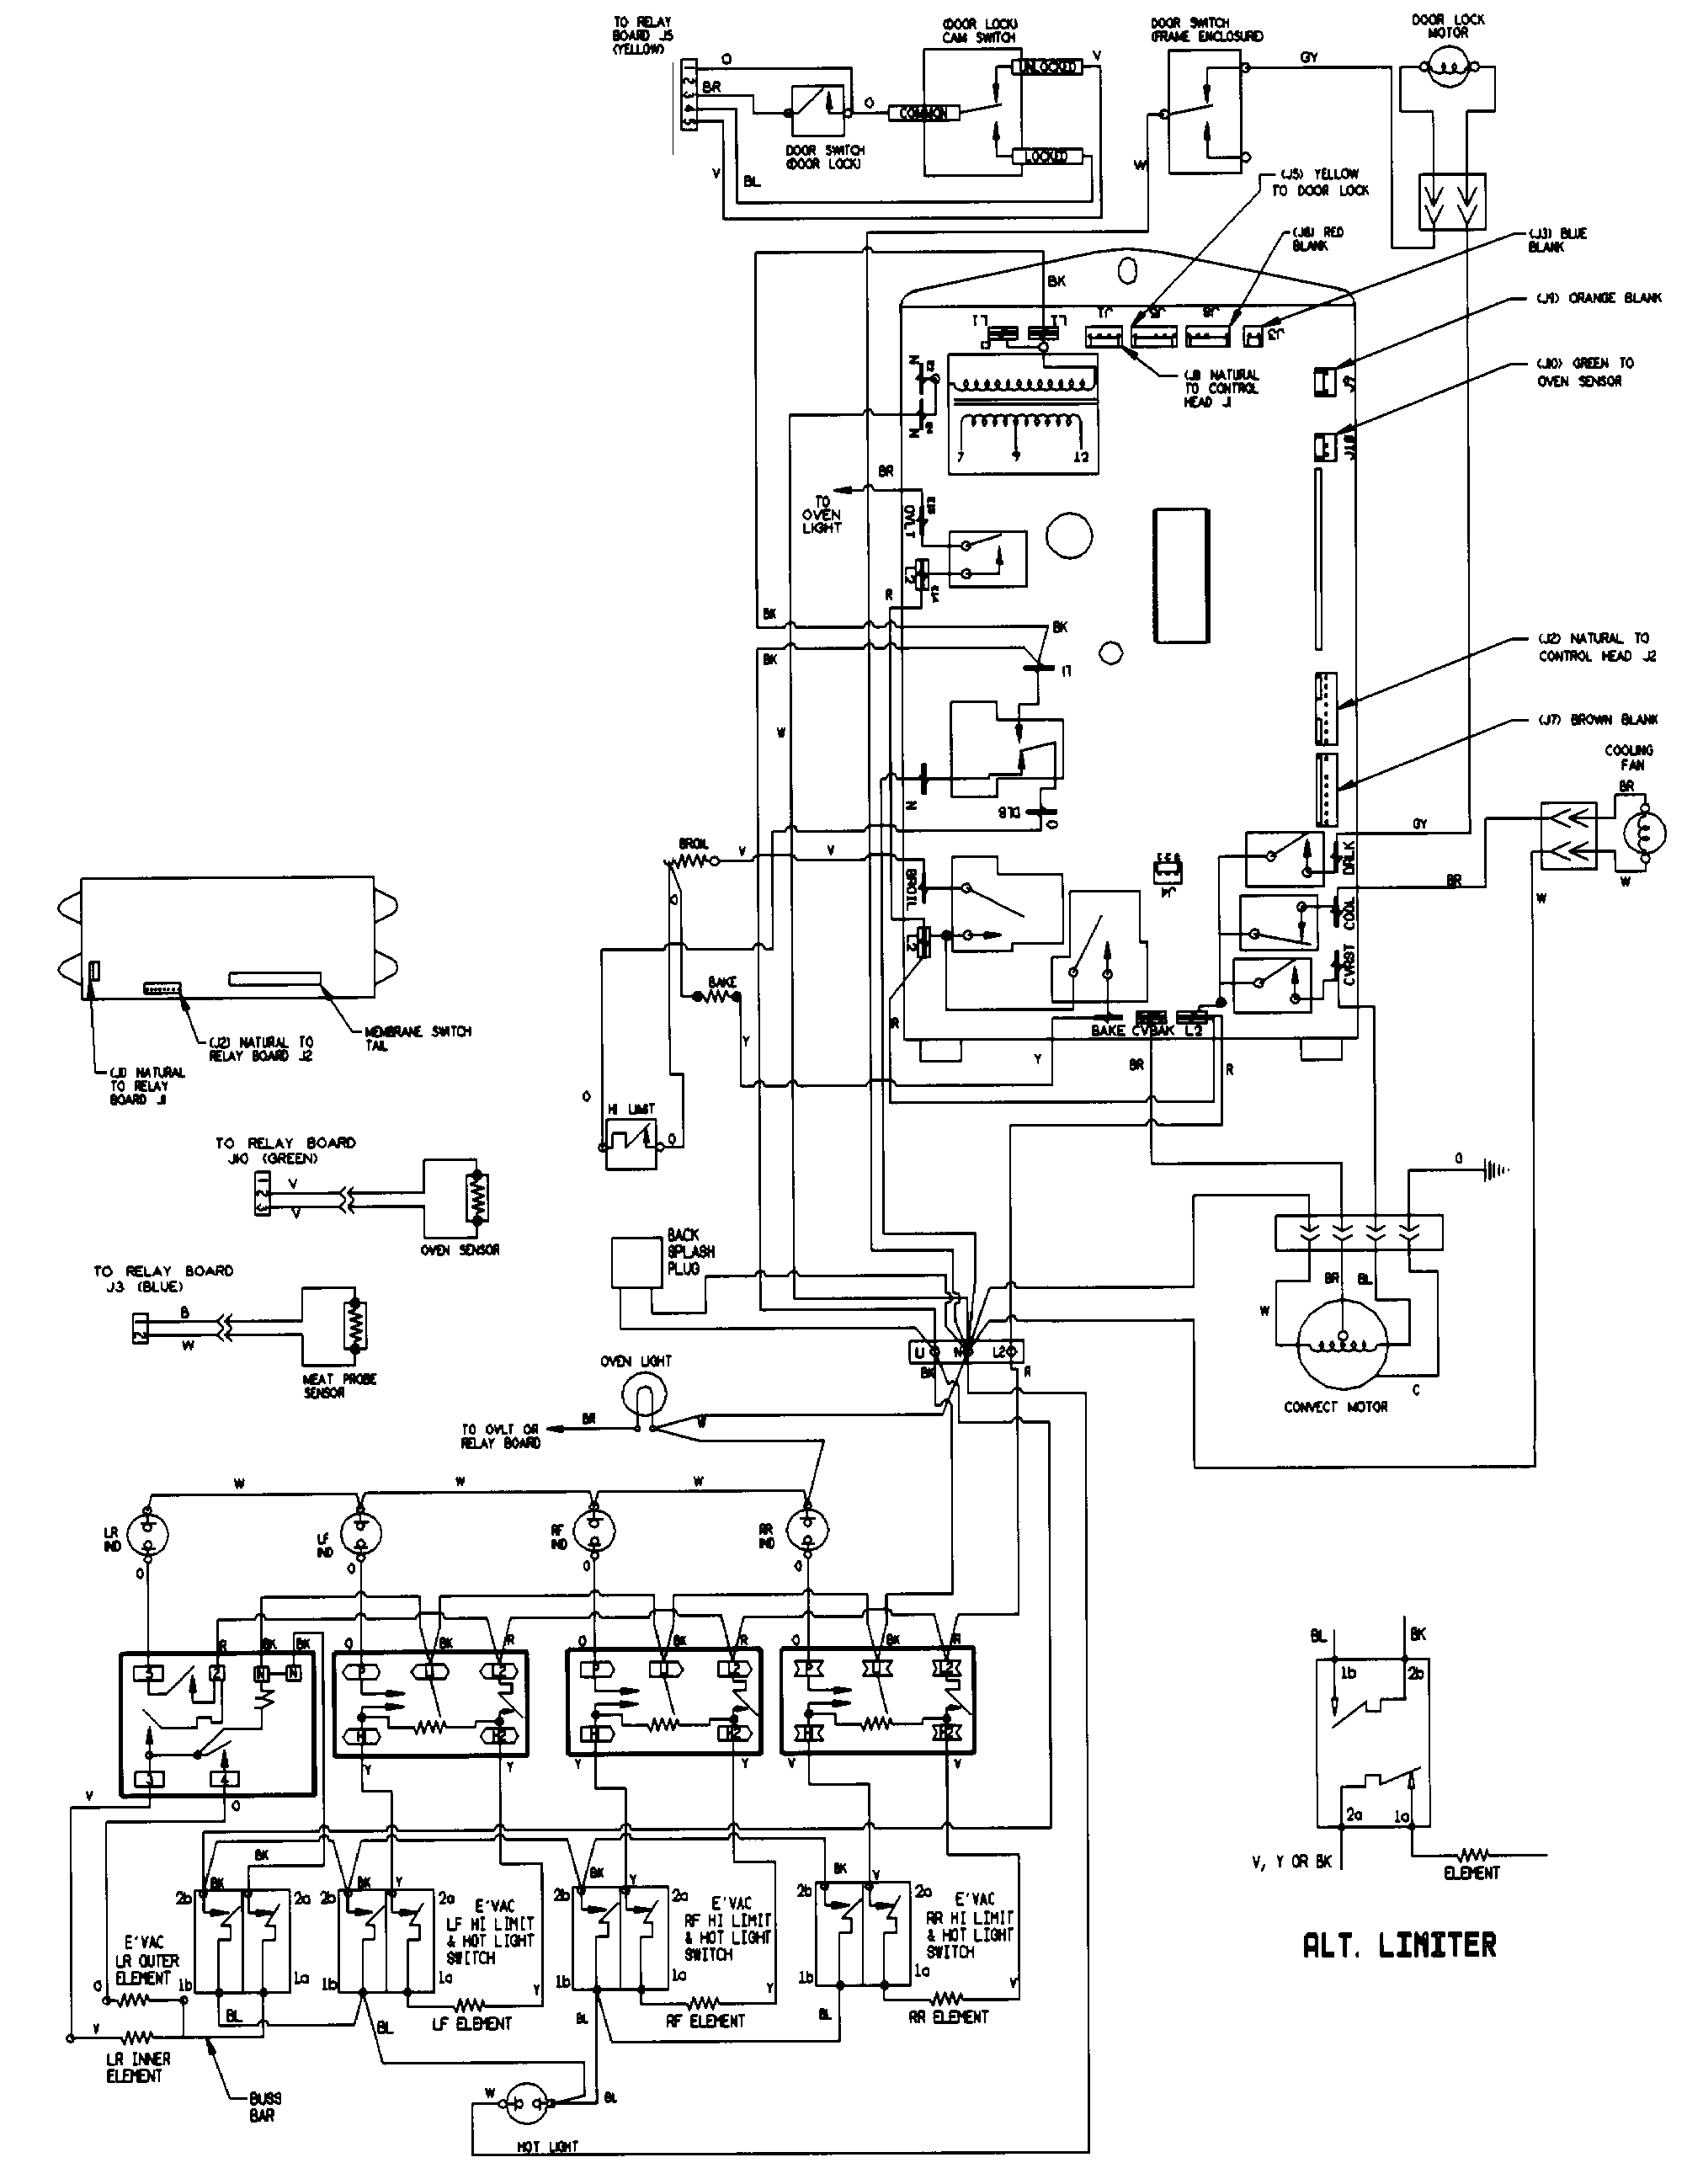 Whirlpool Electric Range Wiring Schematic - Taking Out Steering Column Wiring  Harness 89 for Wiring Diagram SchematicsWiring Diagram Schematics